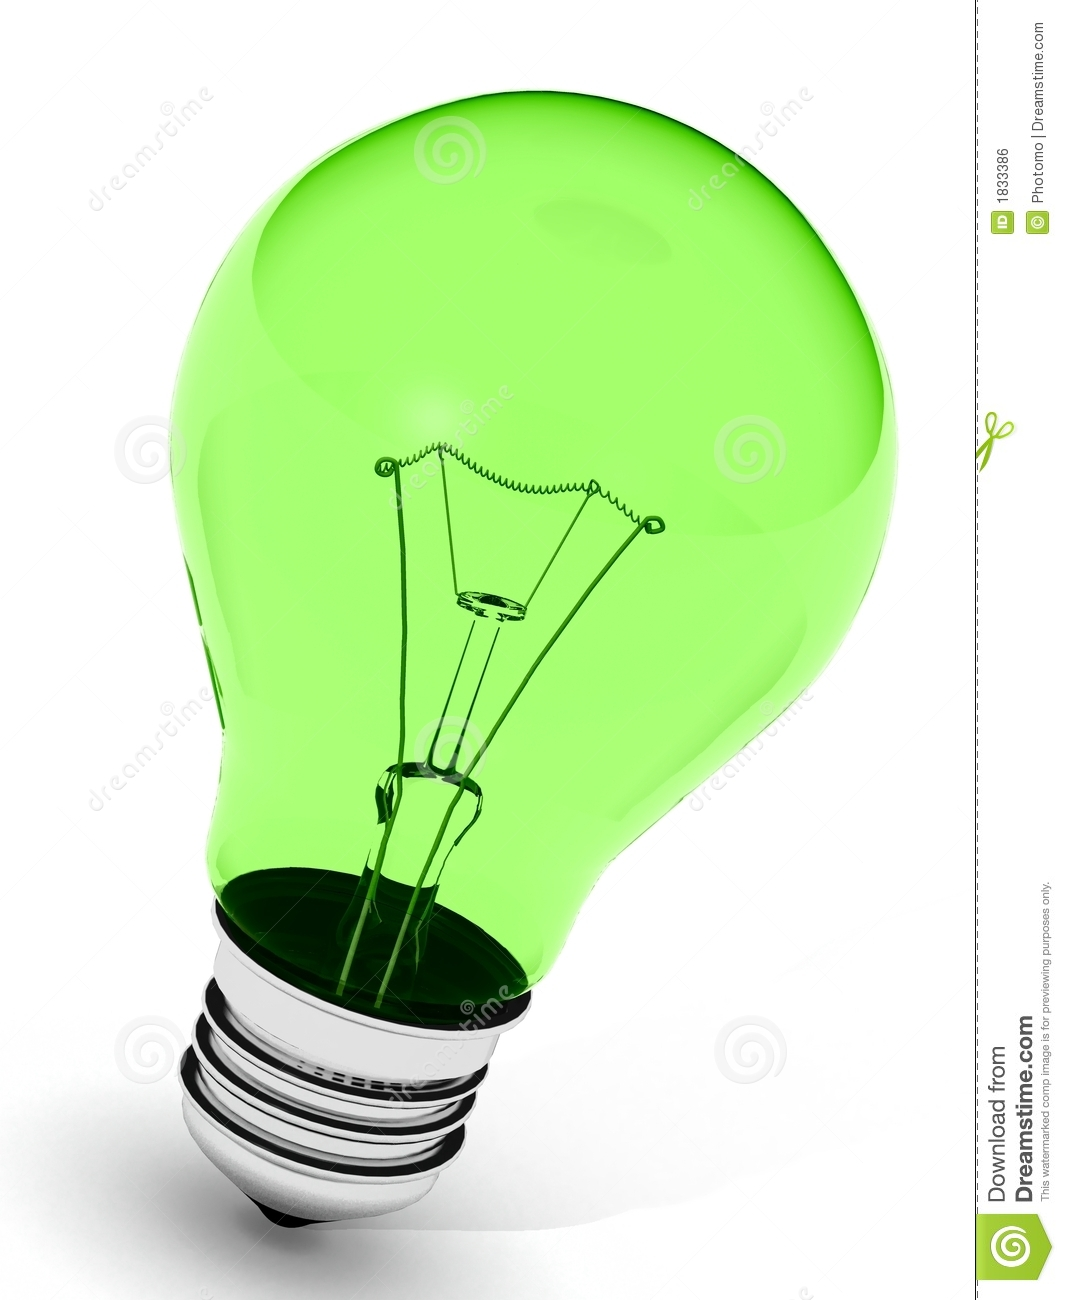 Green Incandescent Light Bulb Royalty Free Stock Image